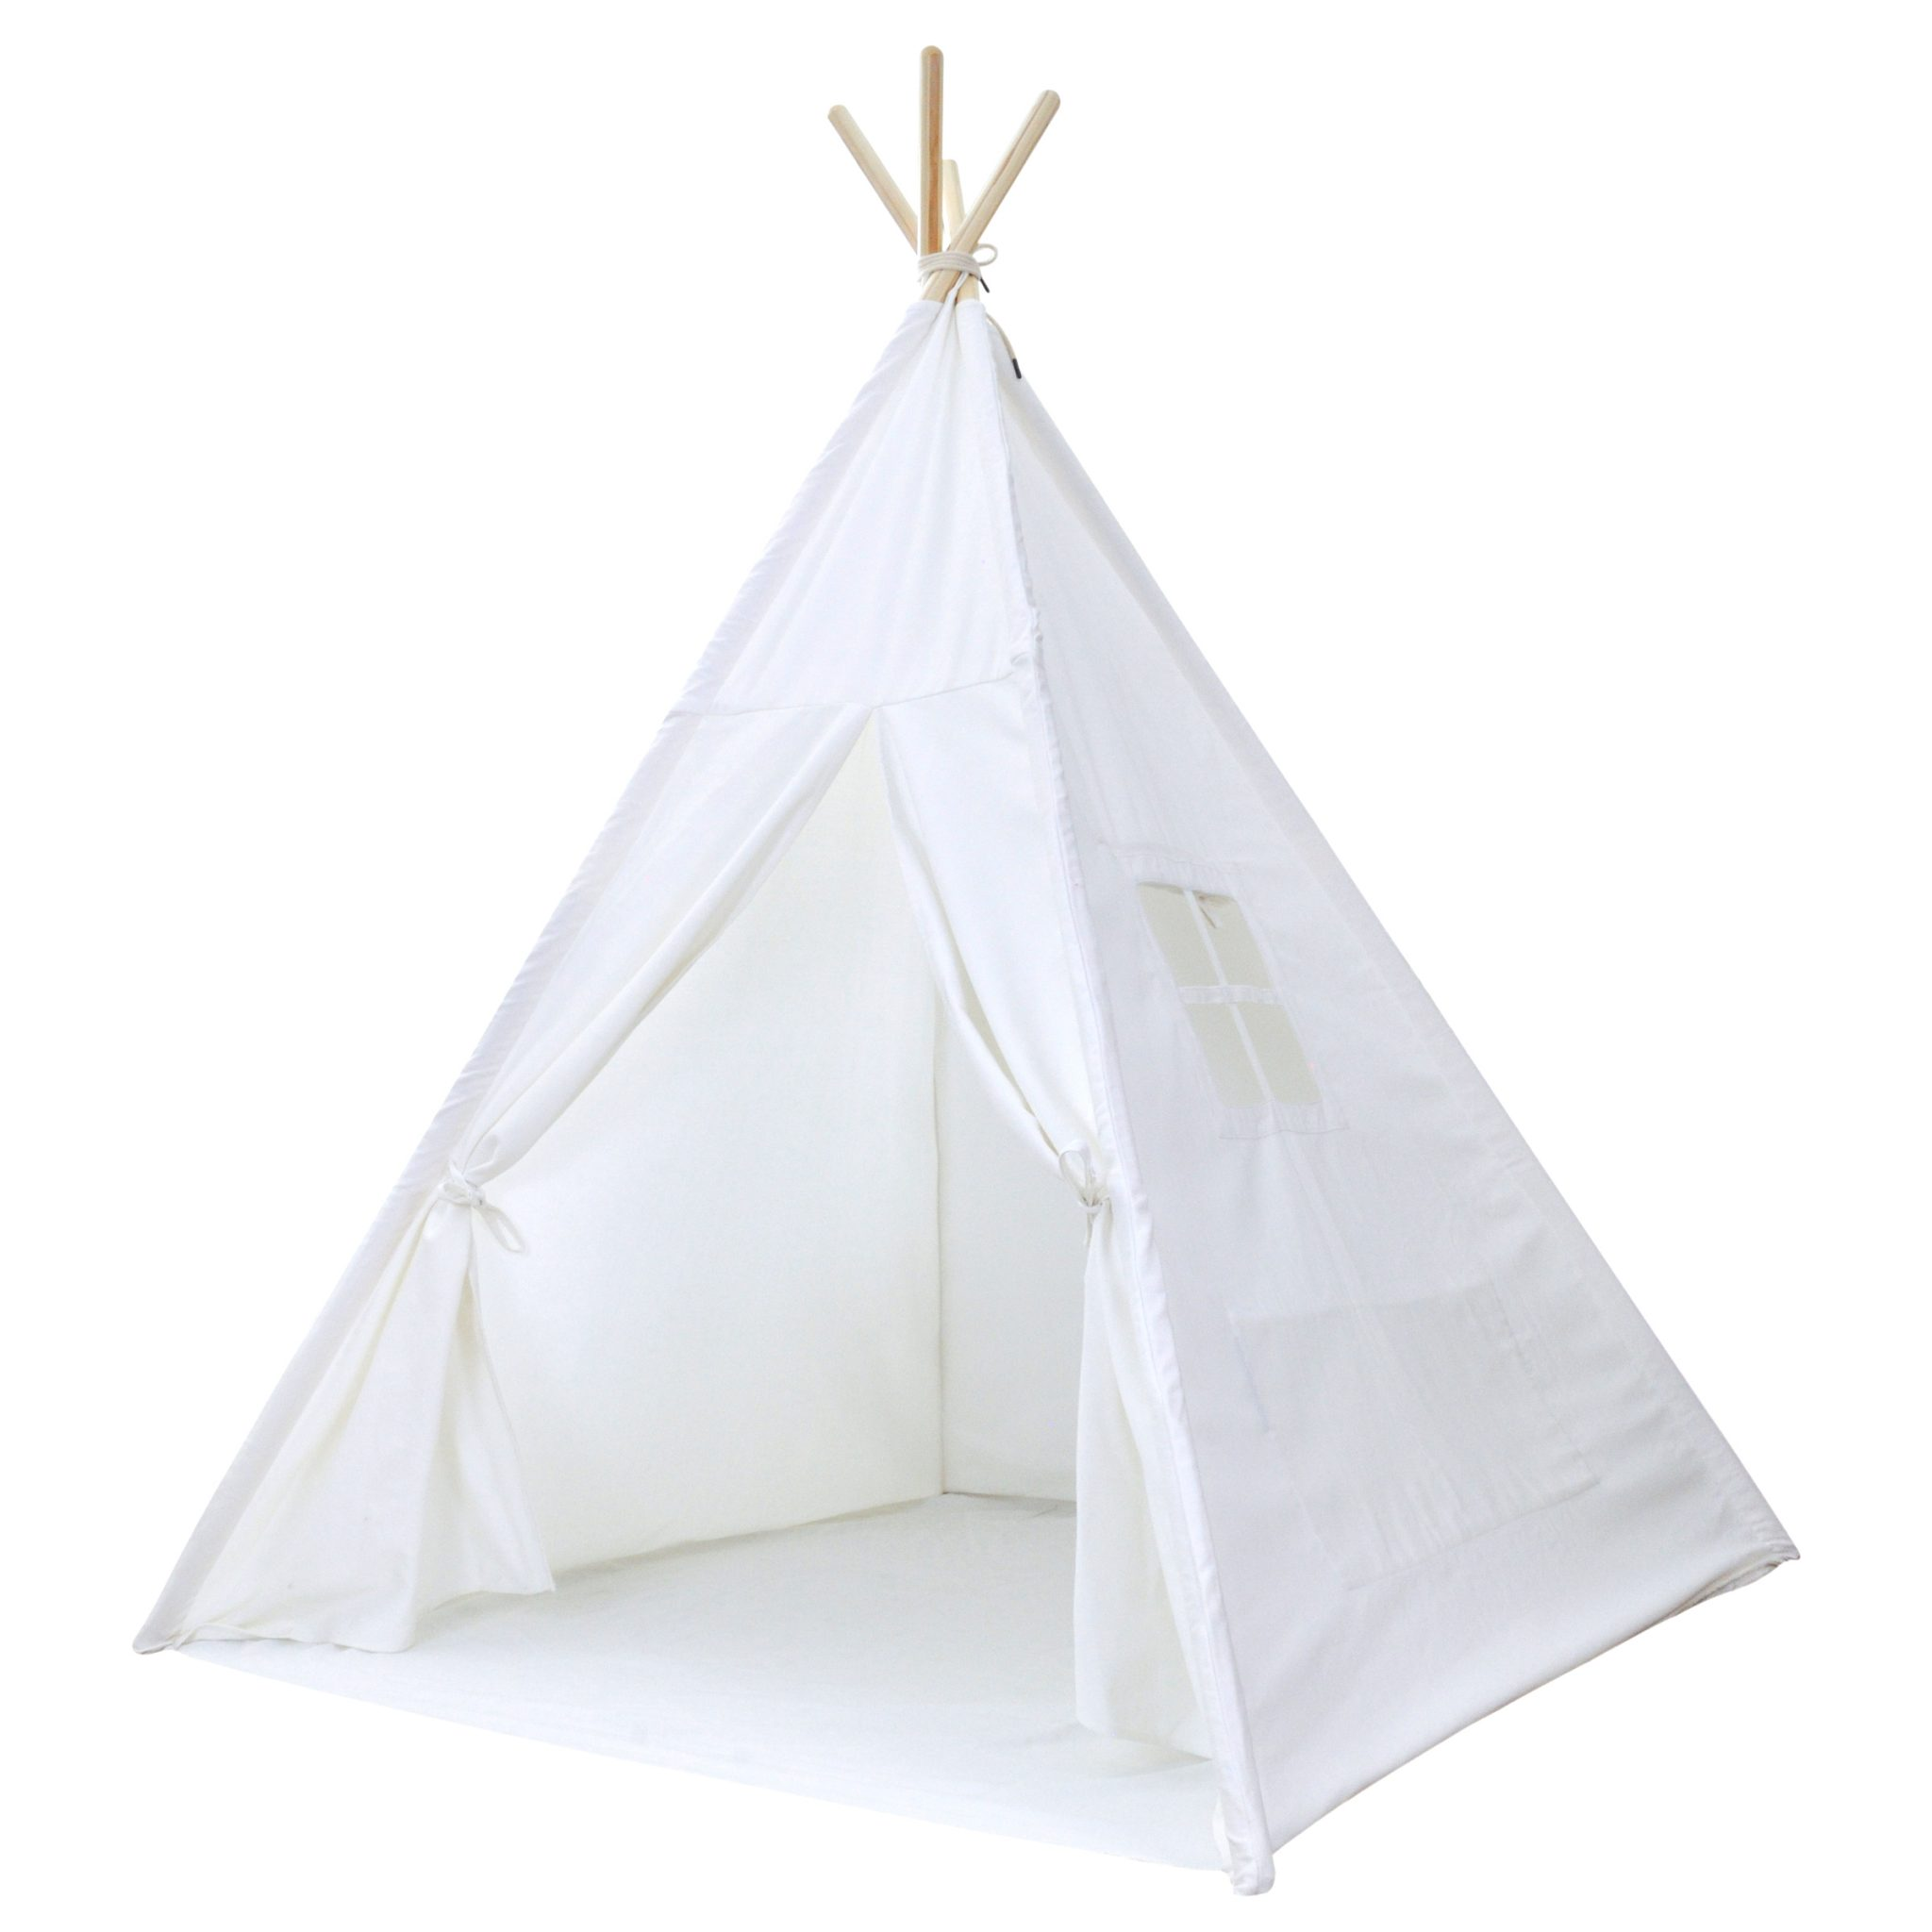 Portable Kids Canvas Teepee Tent with Carrying Case White Cotton Canvas - A Mustard Seed Toys  sc 1 st  A Mustard Seed Toys & Portable Kids Canvas Teepee Tent with Carrying Case White Cotton ...